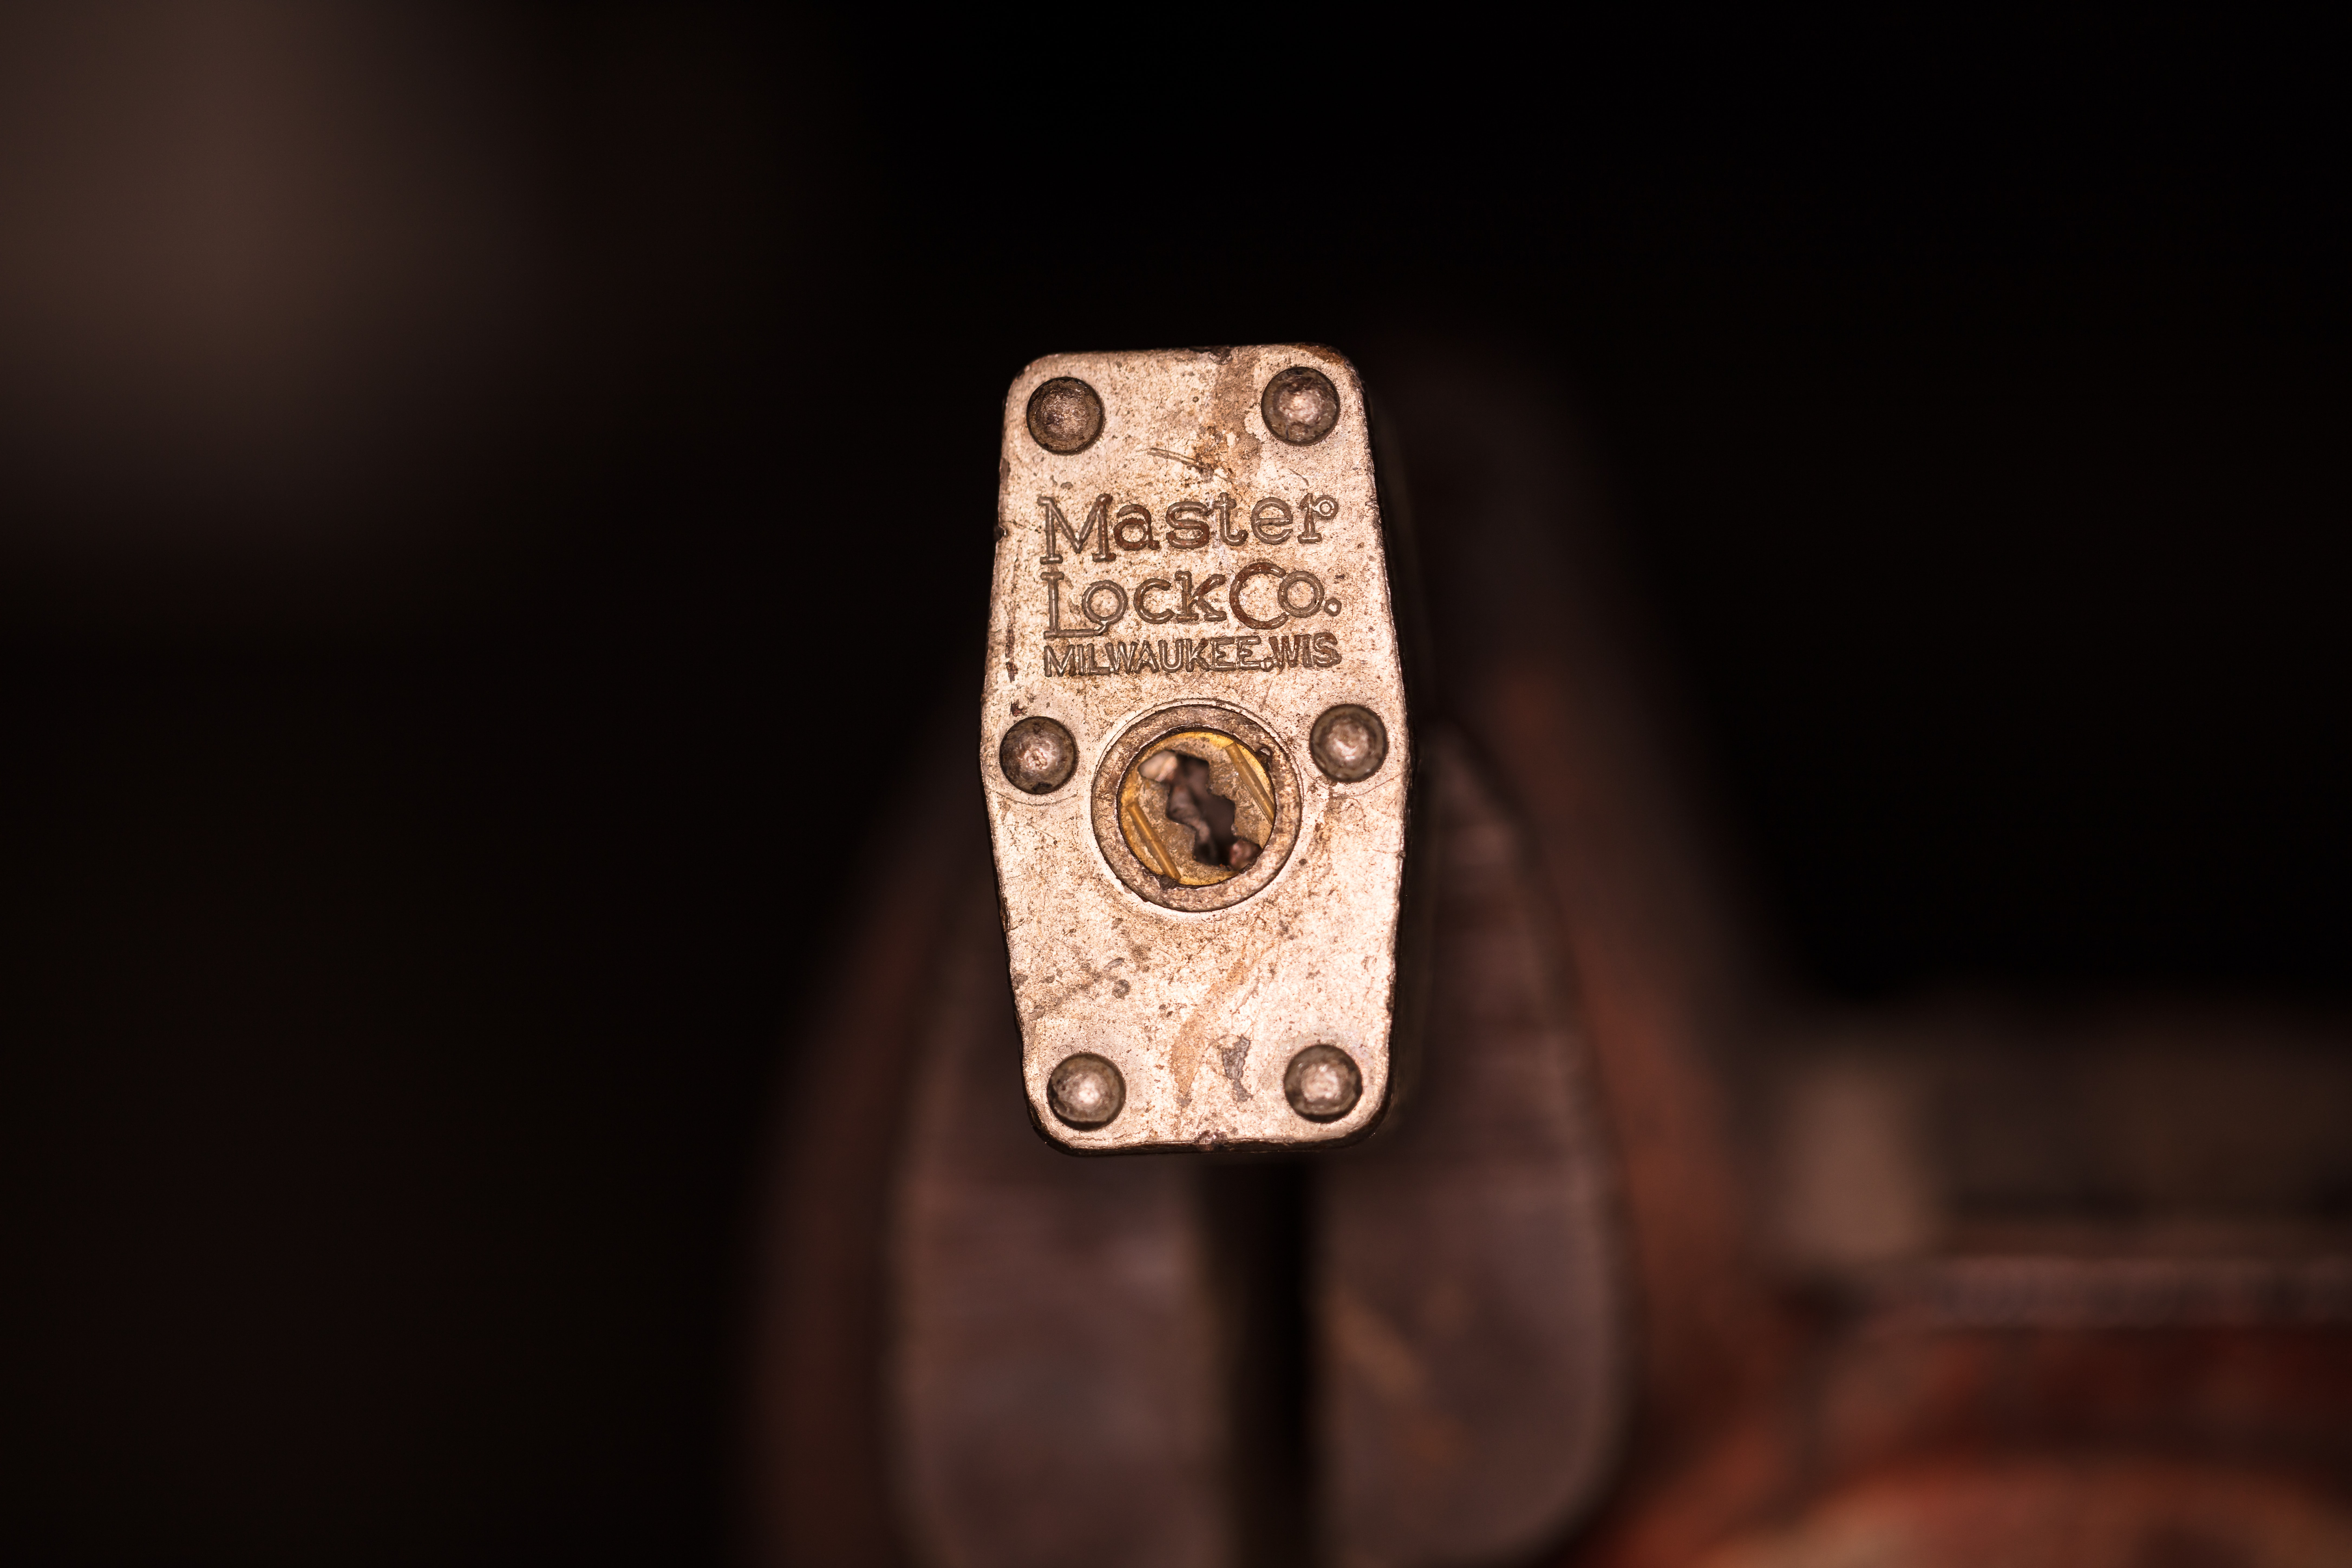 shallow focus photography of stainless steel padlock